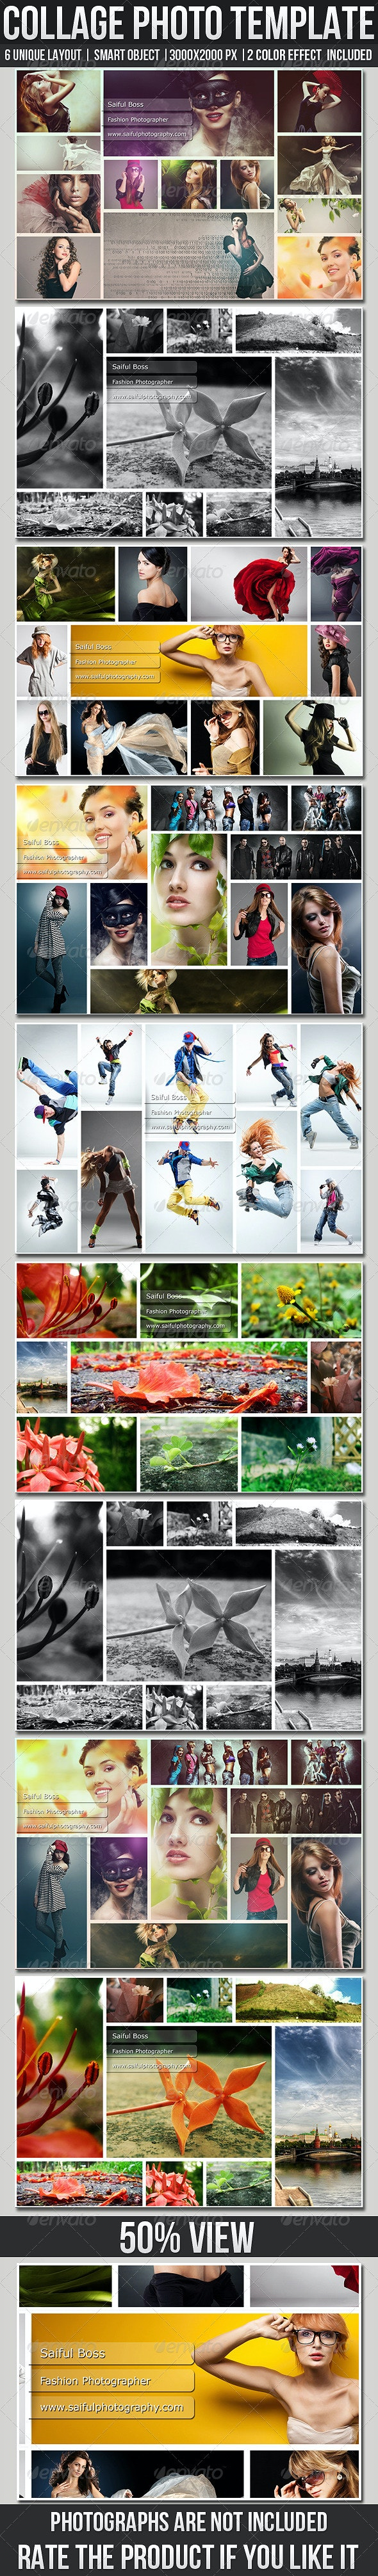 Collage Photo Templates - Photo Templates Graphics